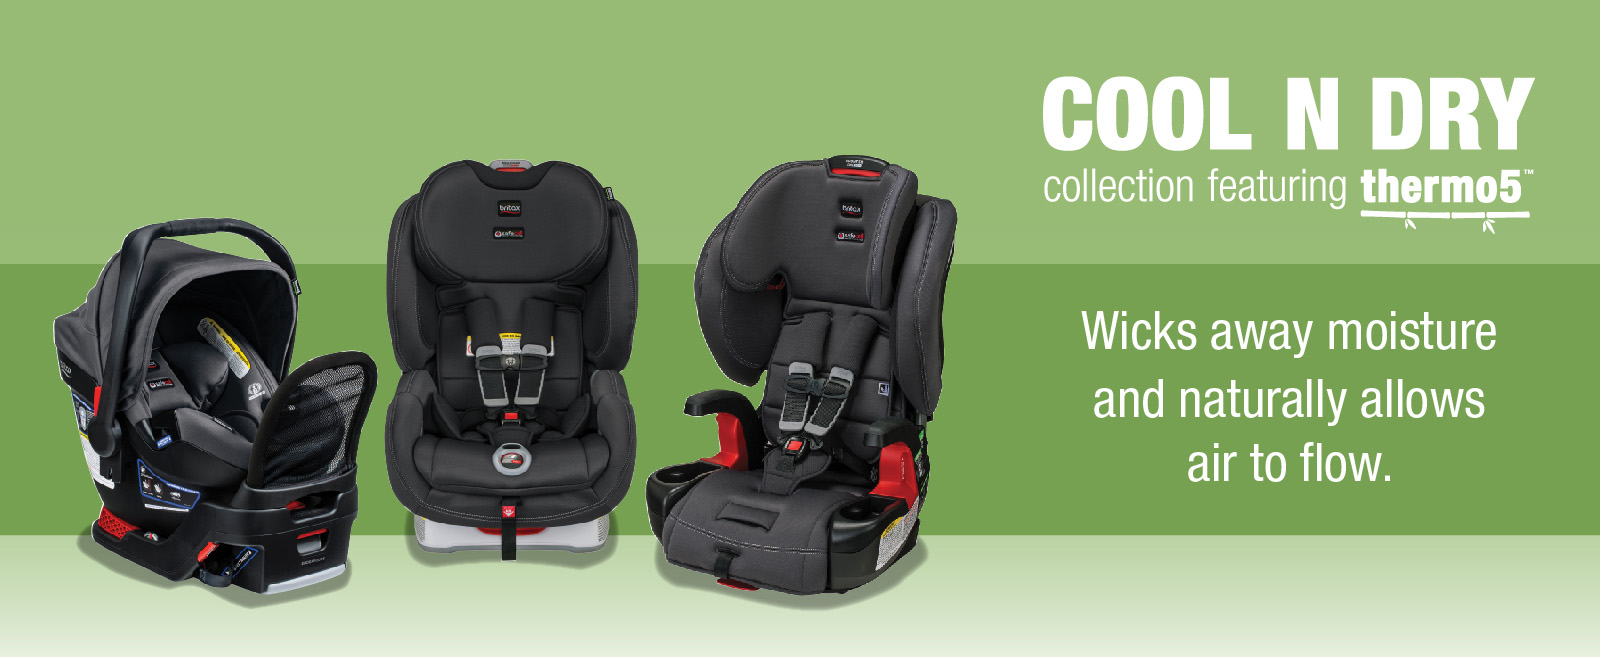 New Cool N Dry Collection from Britax Designed for Maximum Comfort and Safety